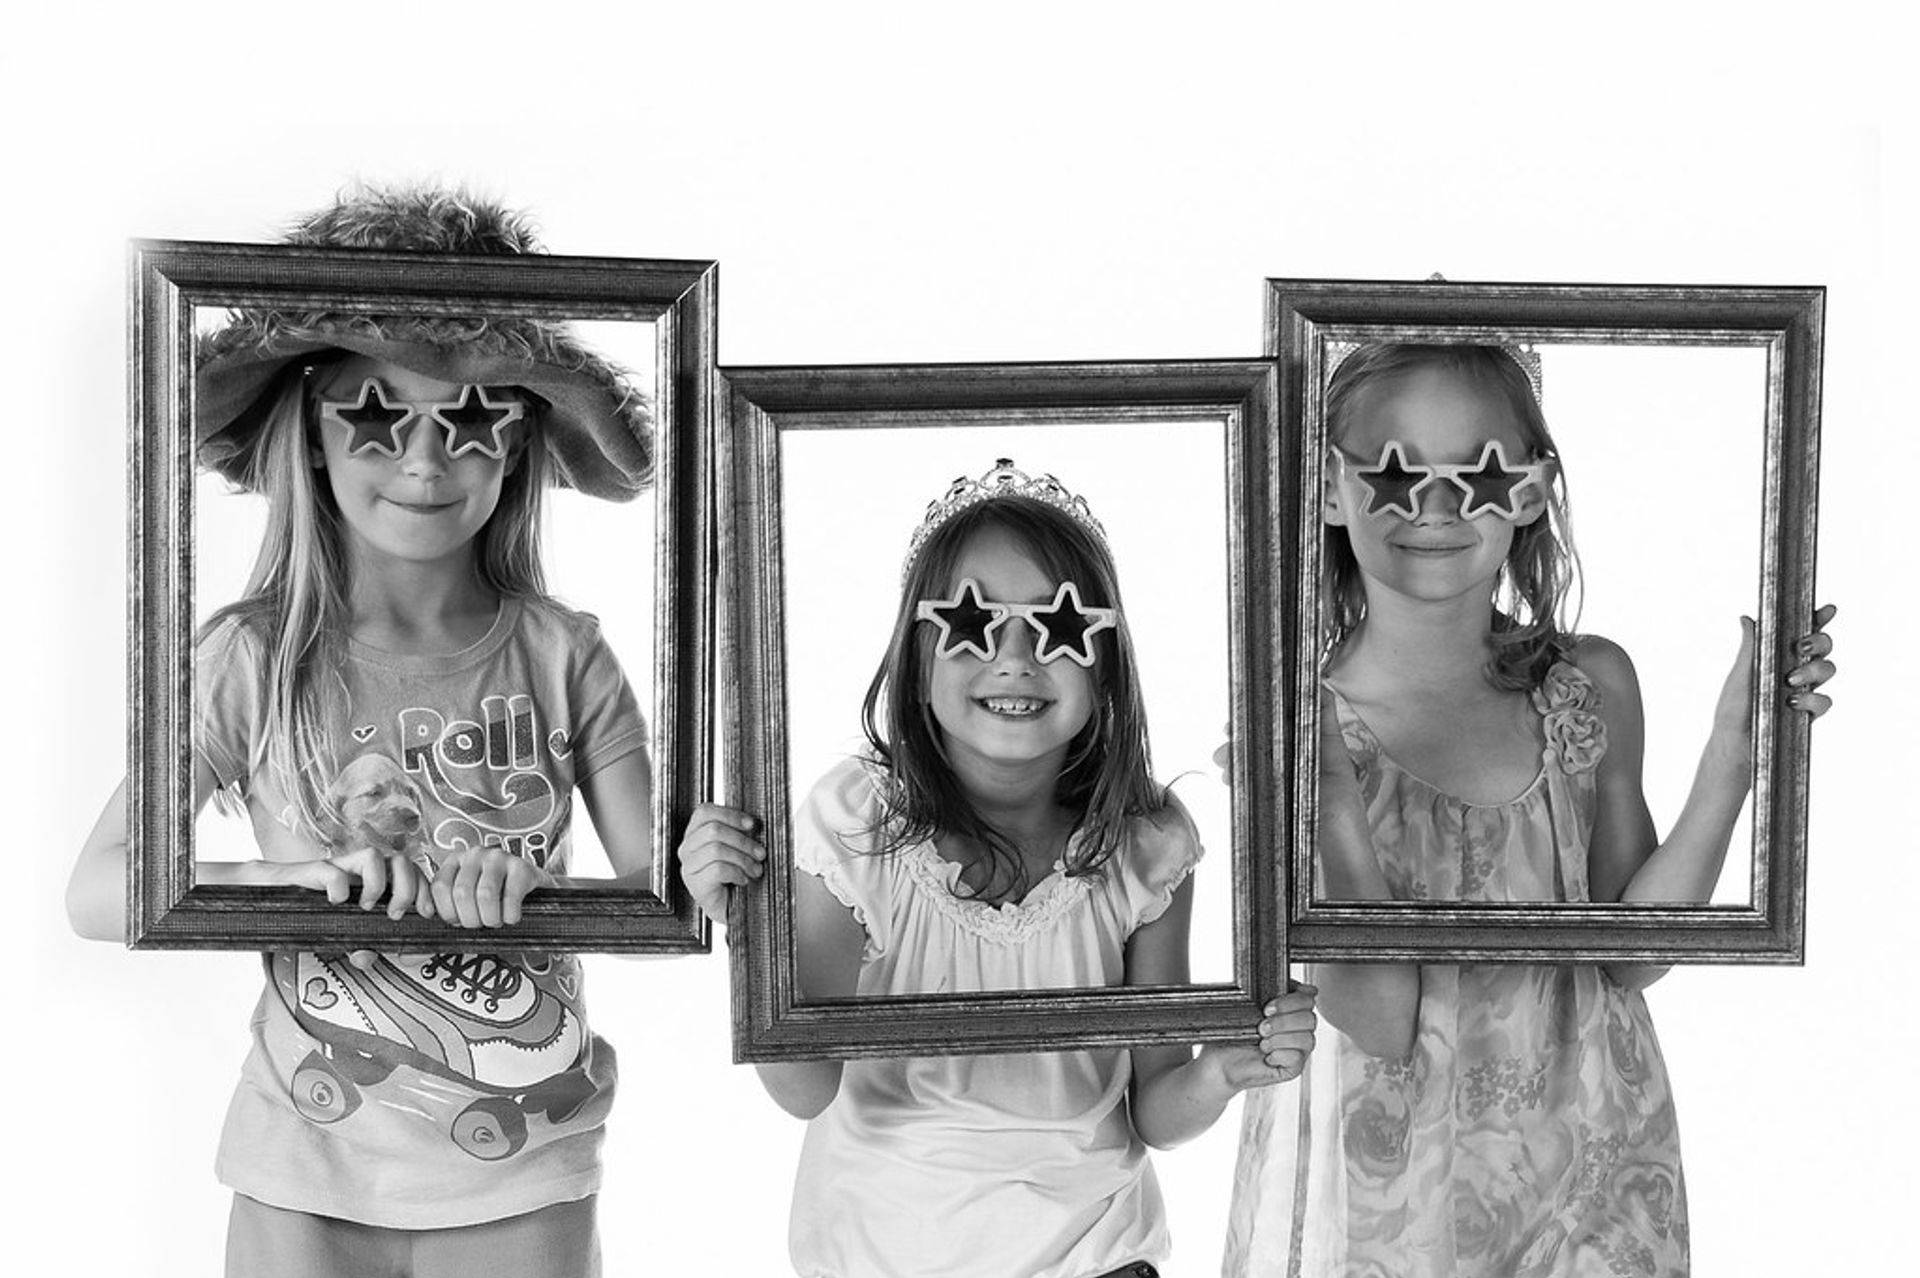 Three girls ahving frame fun